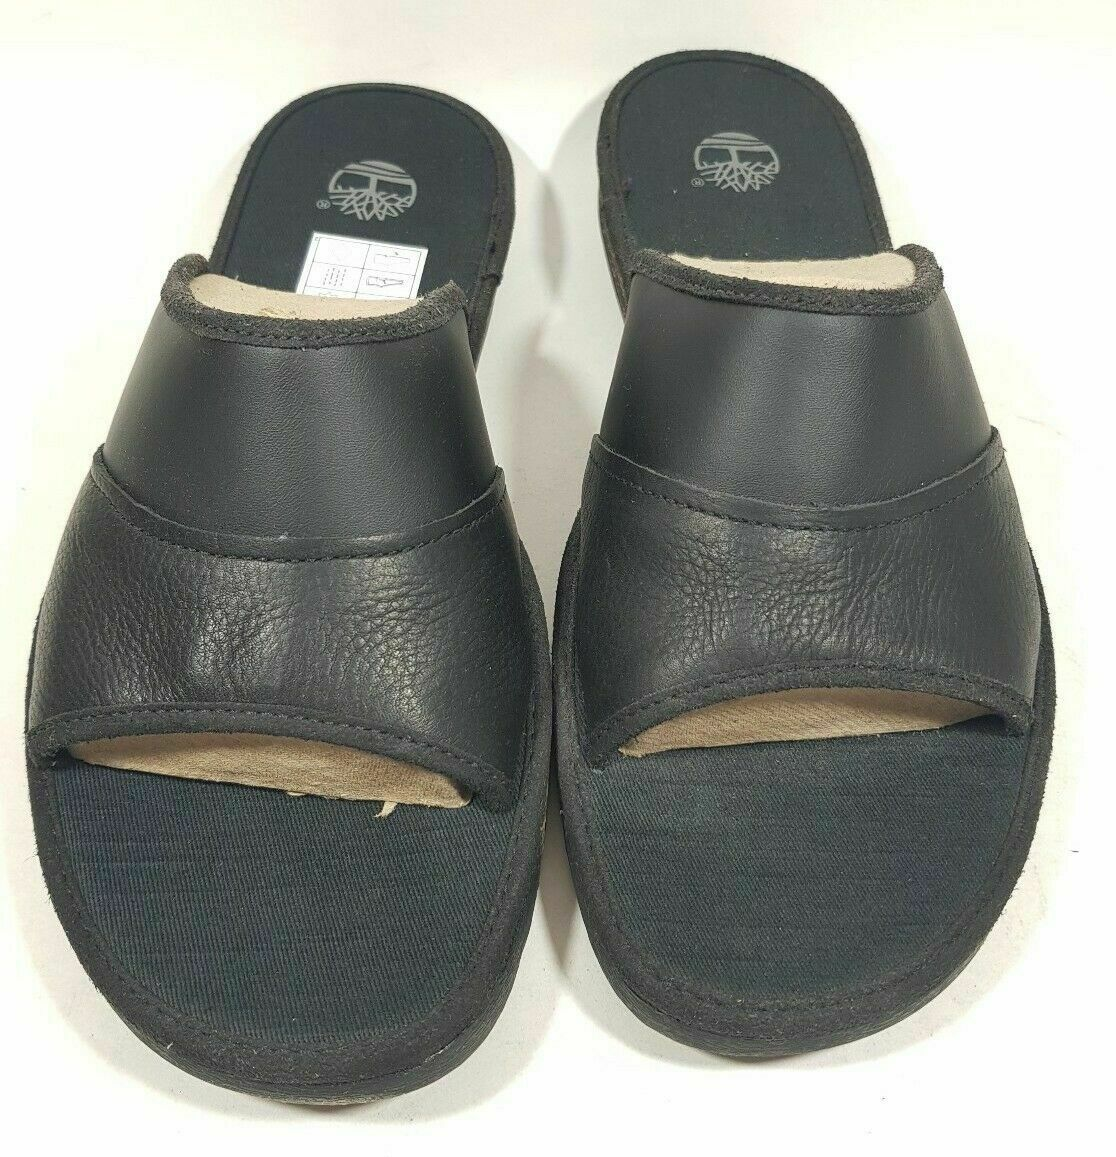 Primary image for Timberland Sandals Mens Ammon Slide Black Leather 49524 Comfort Casual Size 13